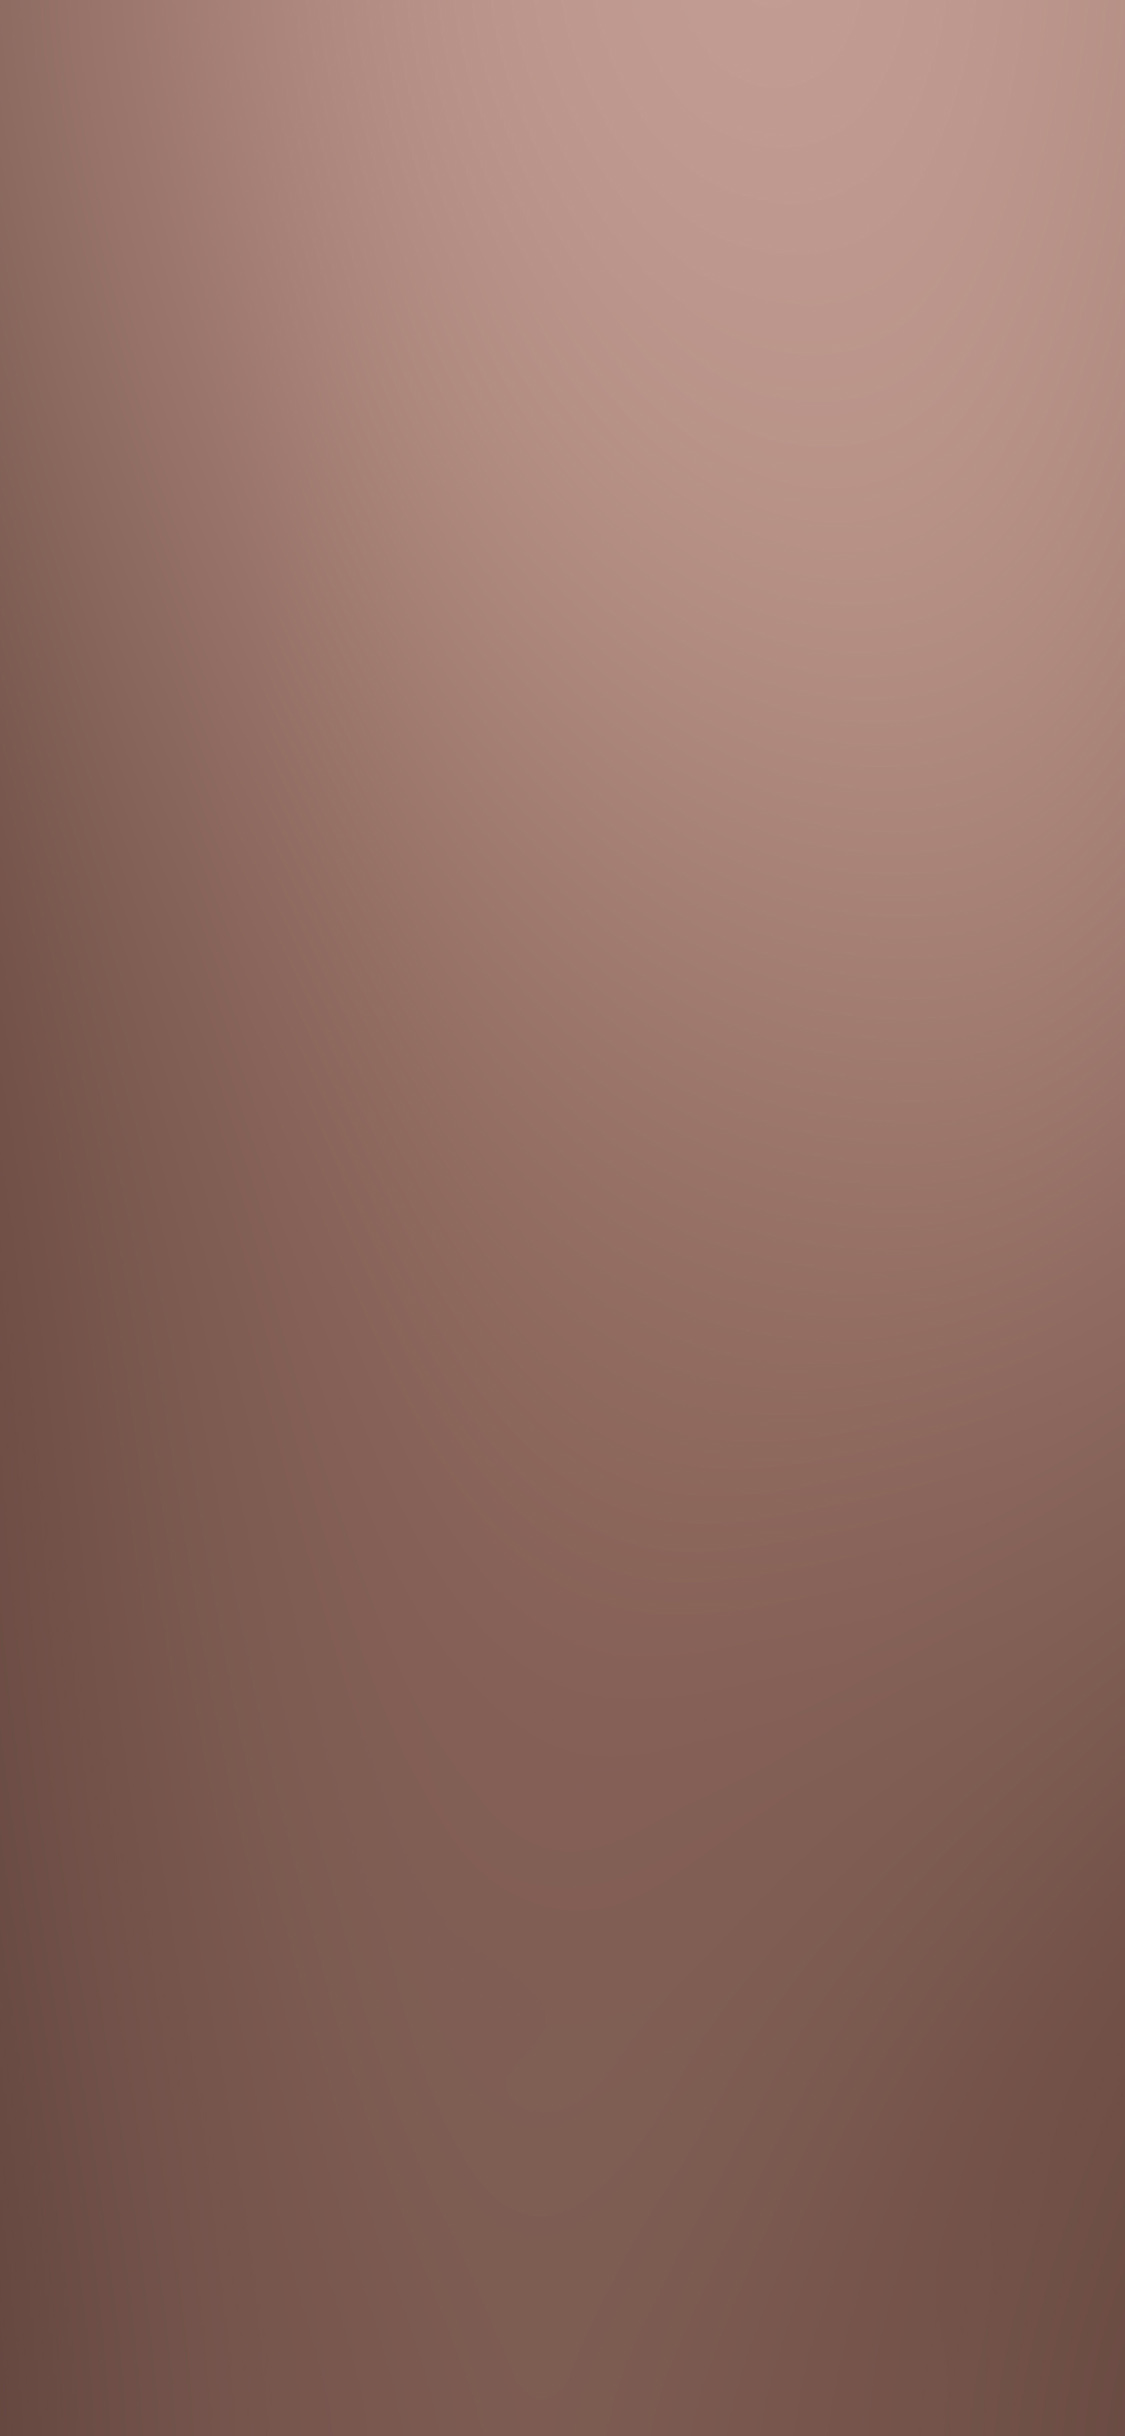 iPhoneXpapers.com-Apple-iPhone-wallpaper-sf91-brown-beige-rose-gold-gradation-blur